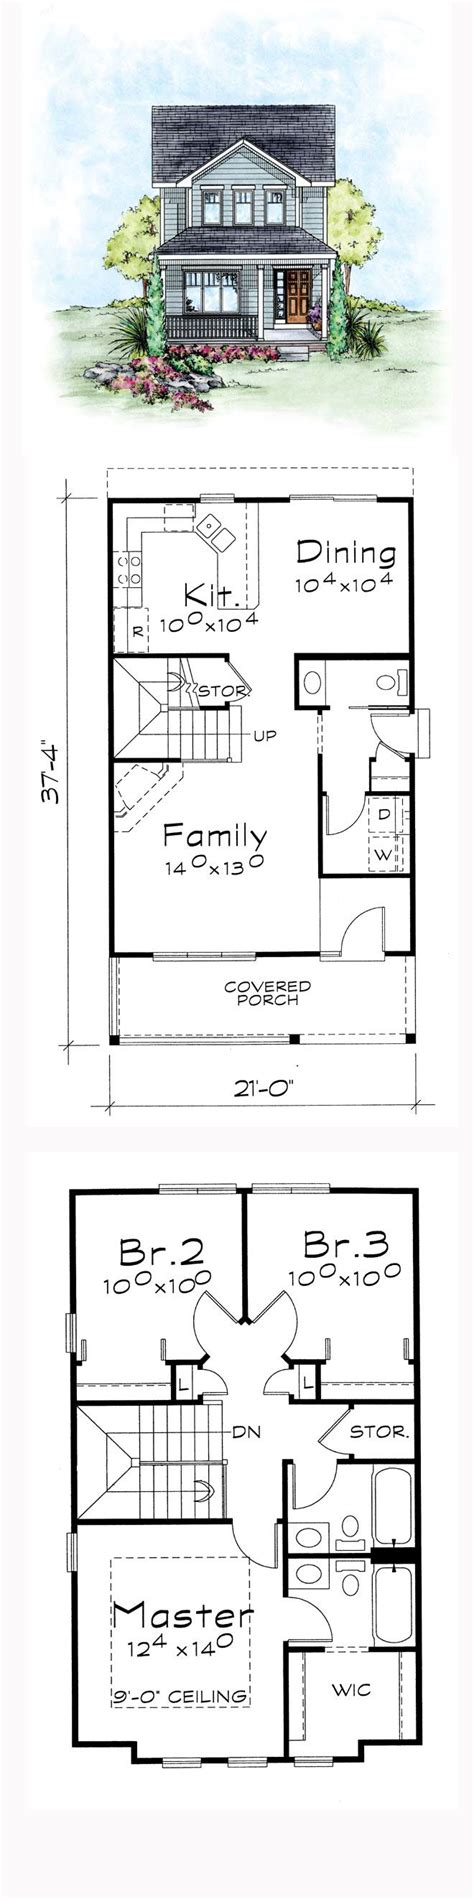 small narrow lot house plans best 25 narrow house plans ideas on pinterest narrow lot house plans narrow house designs